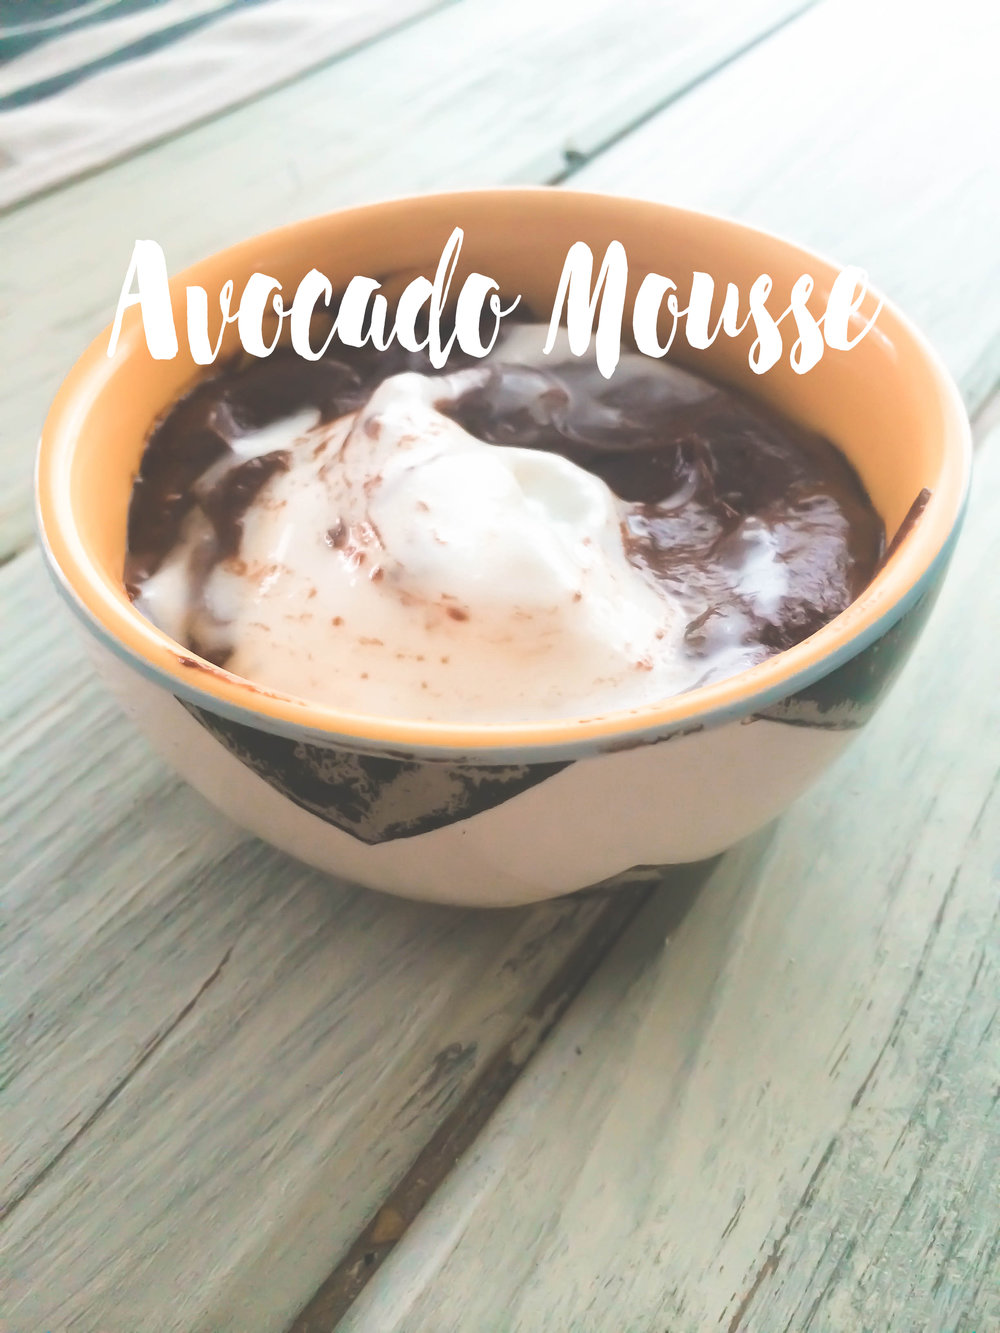 Avocado Mousse.jpg